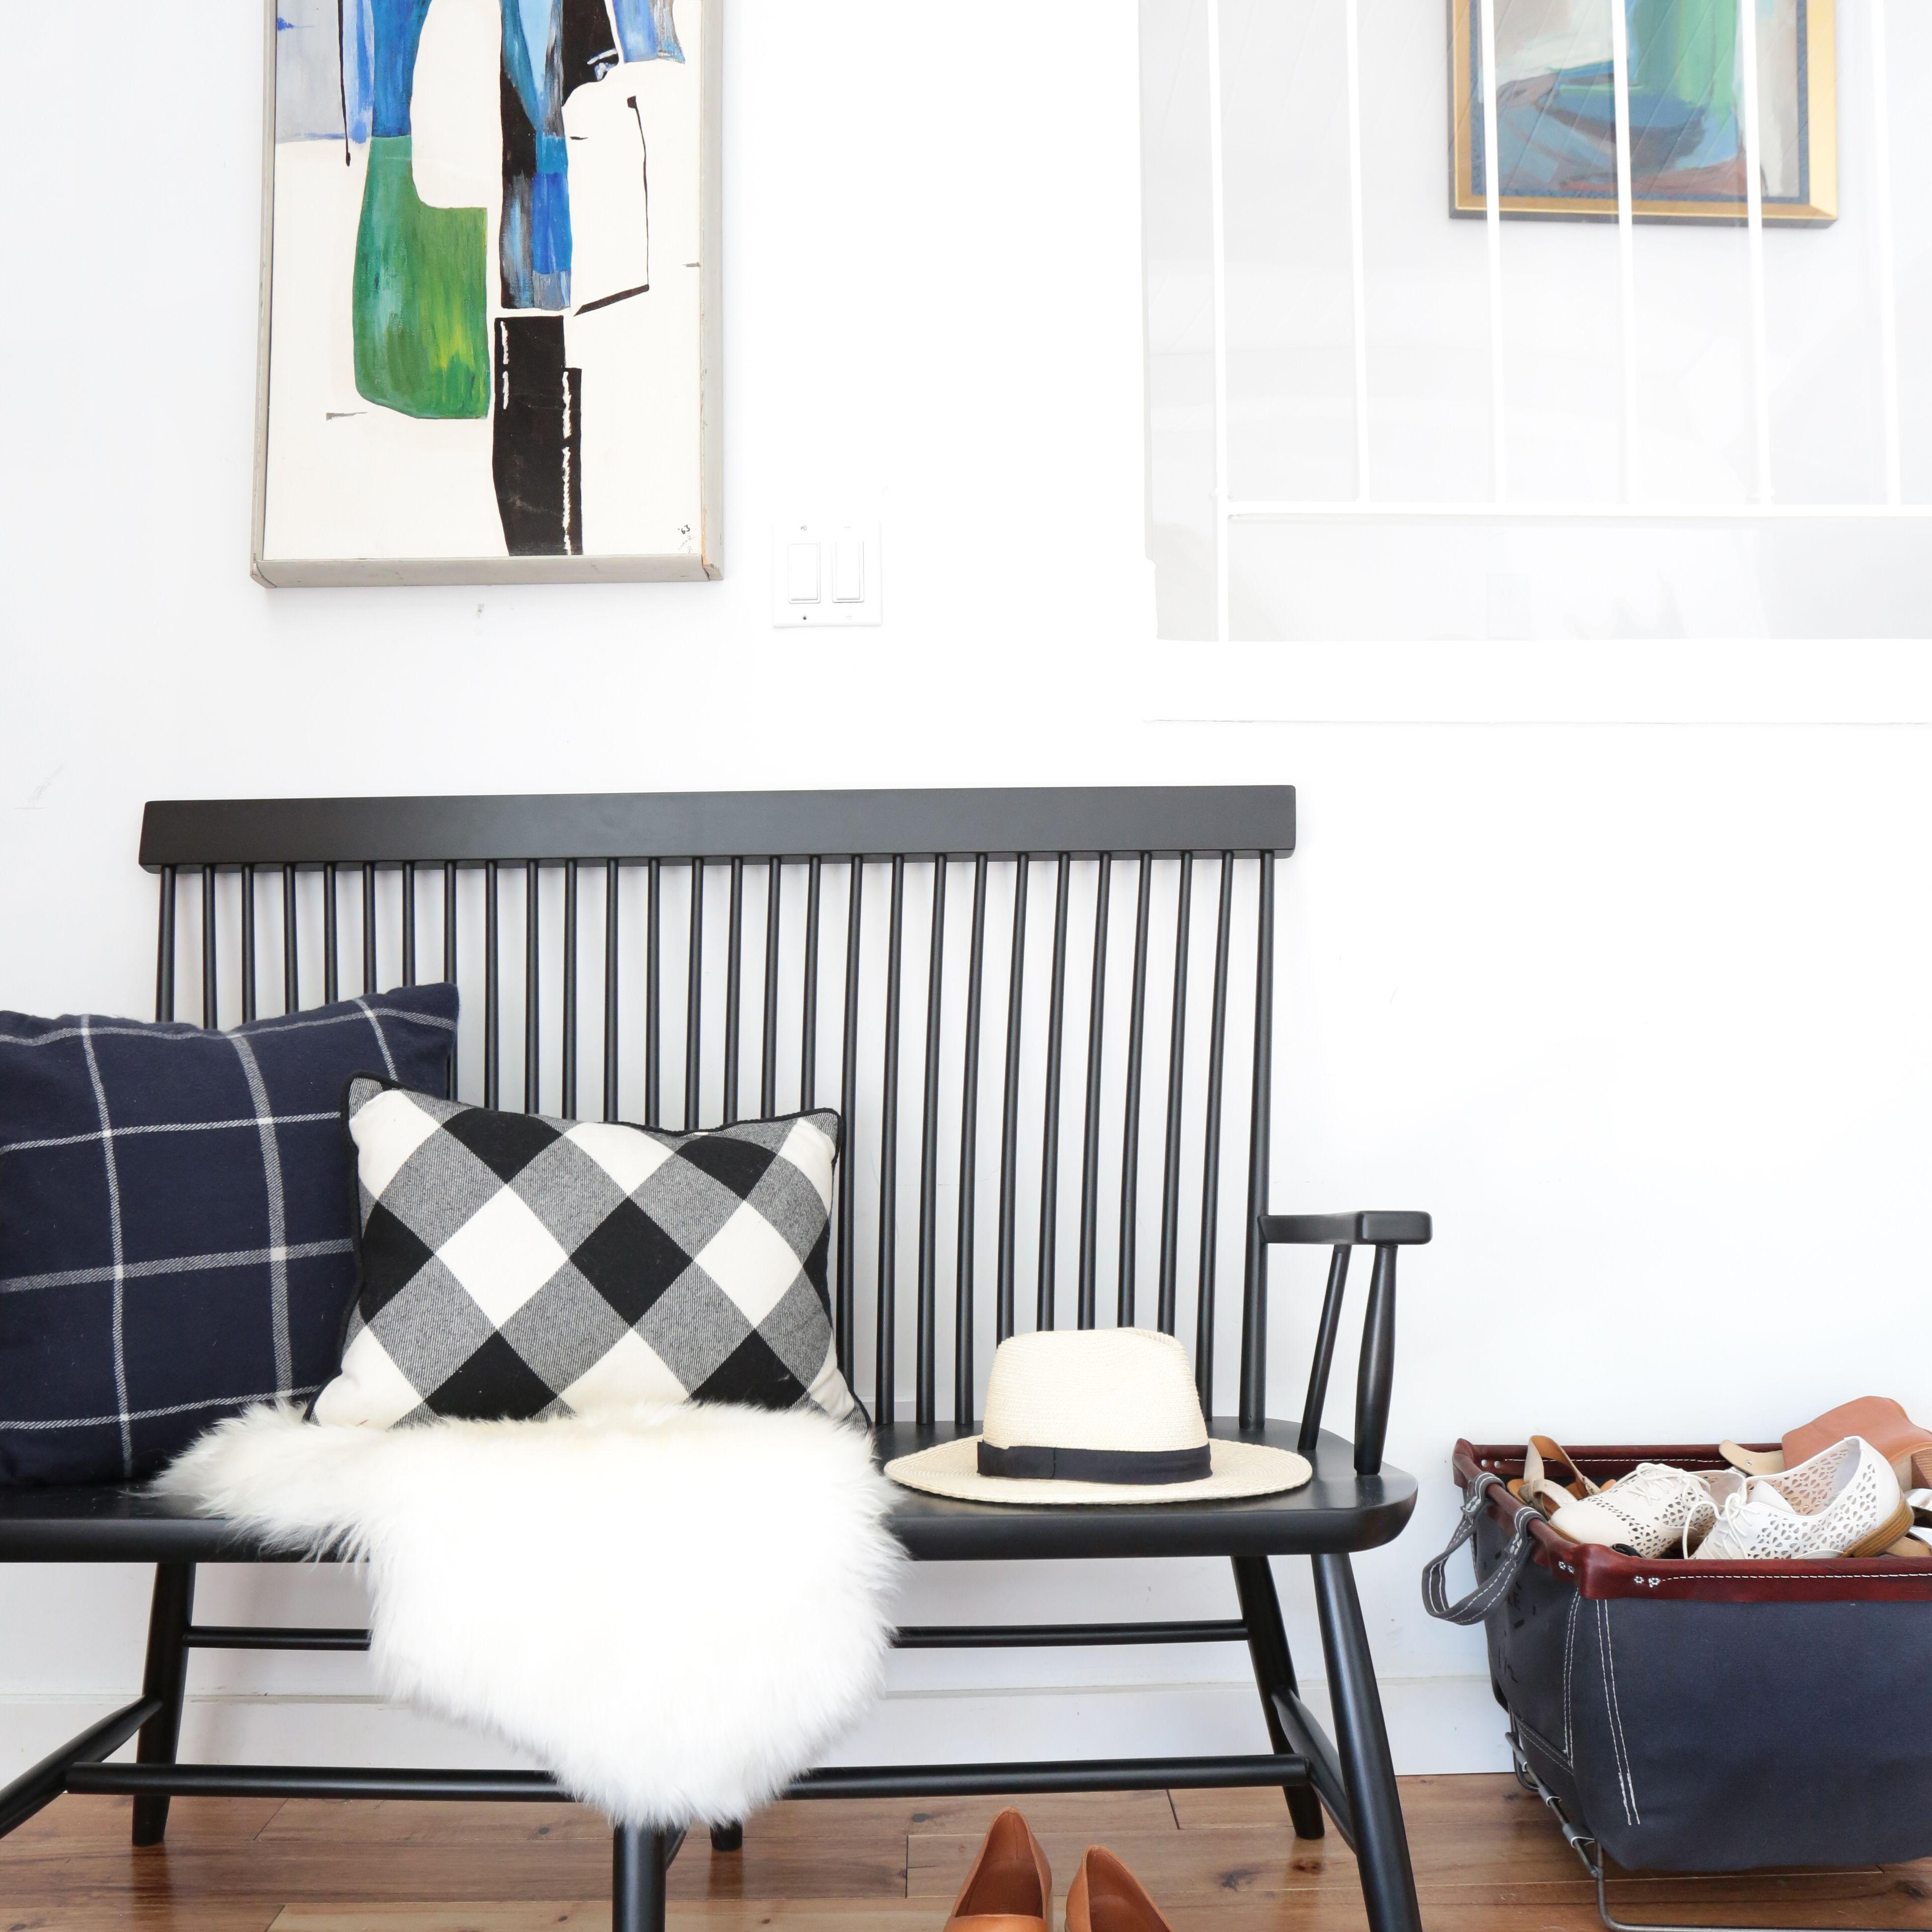 Seating ideas in a small entryway